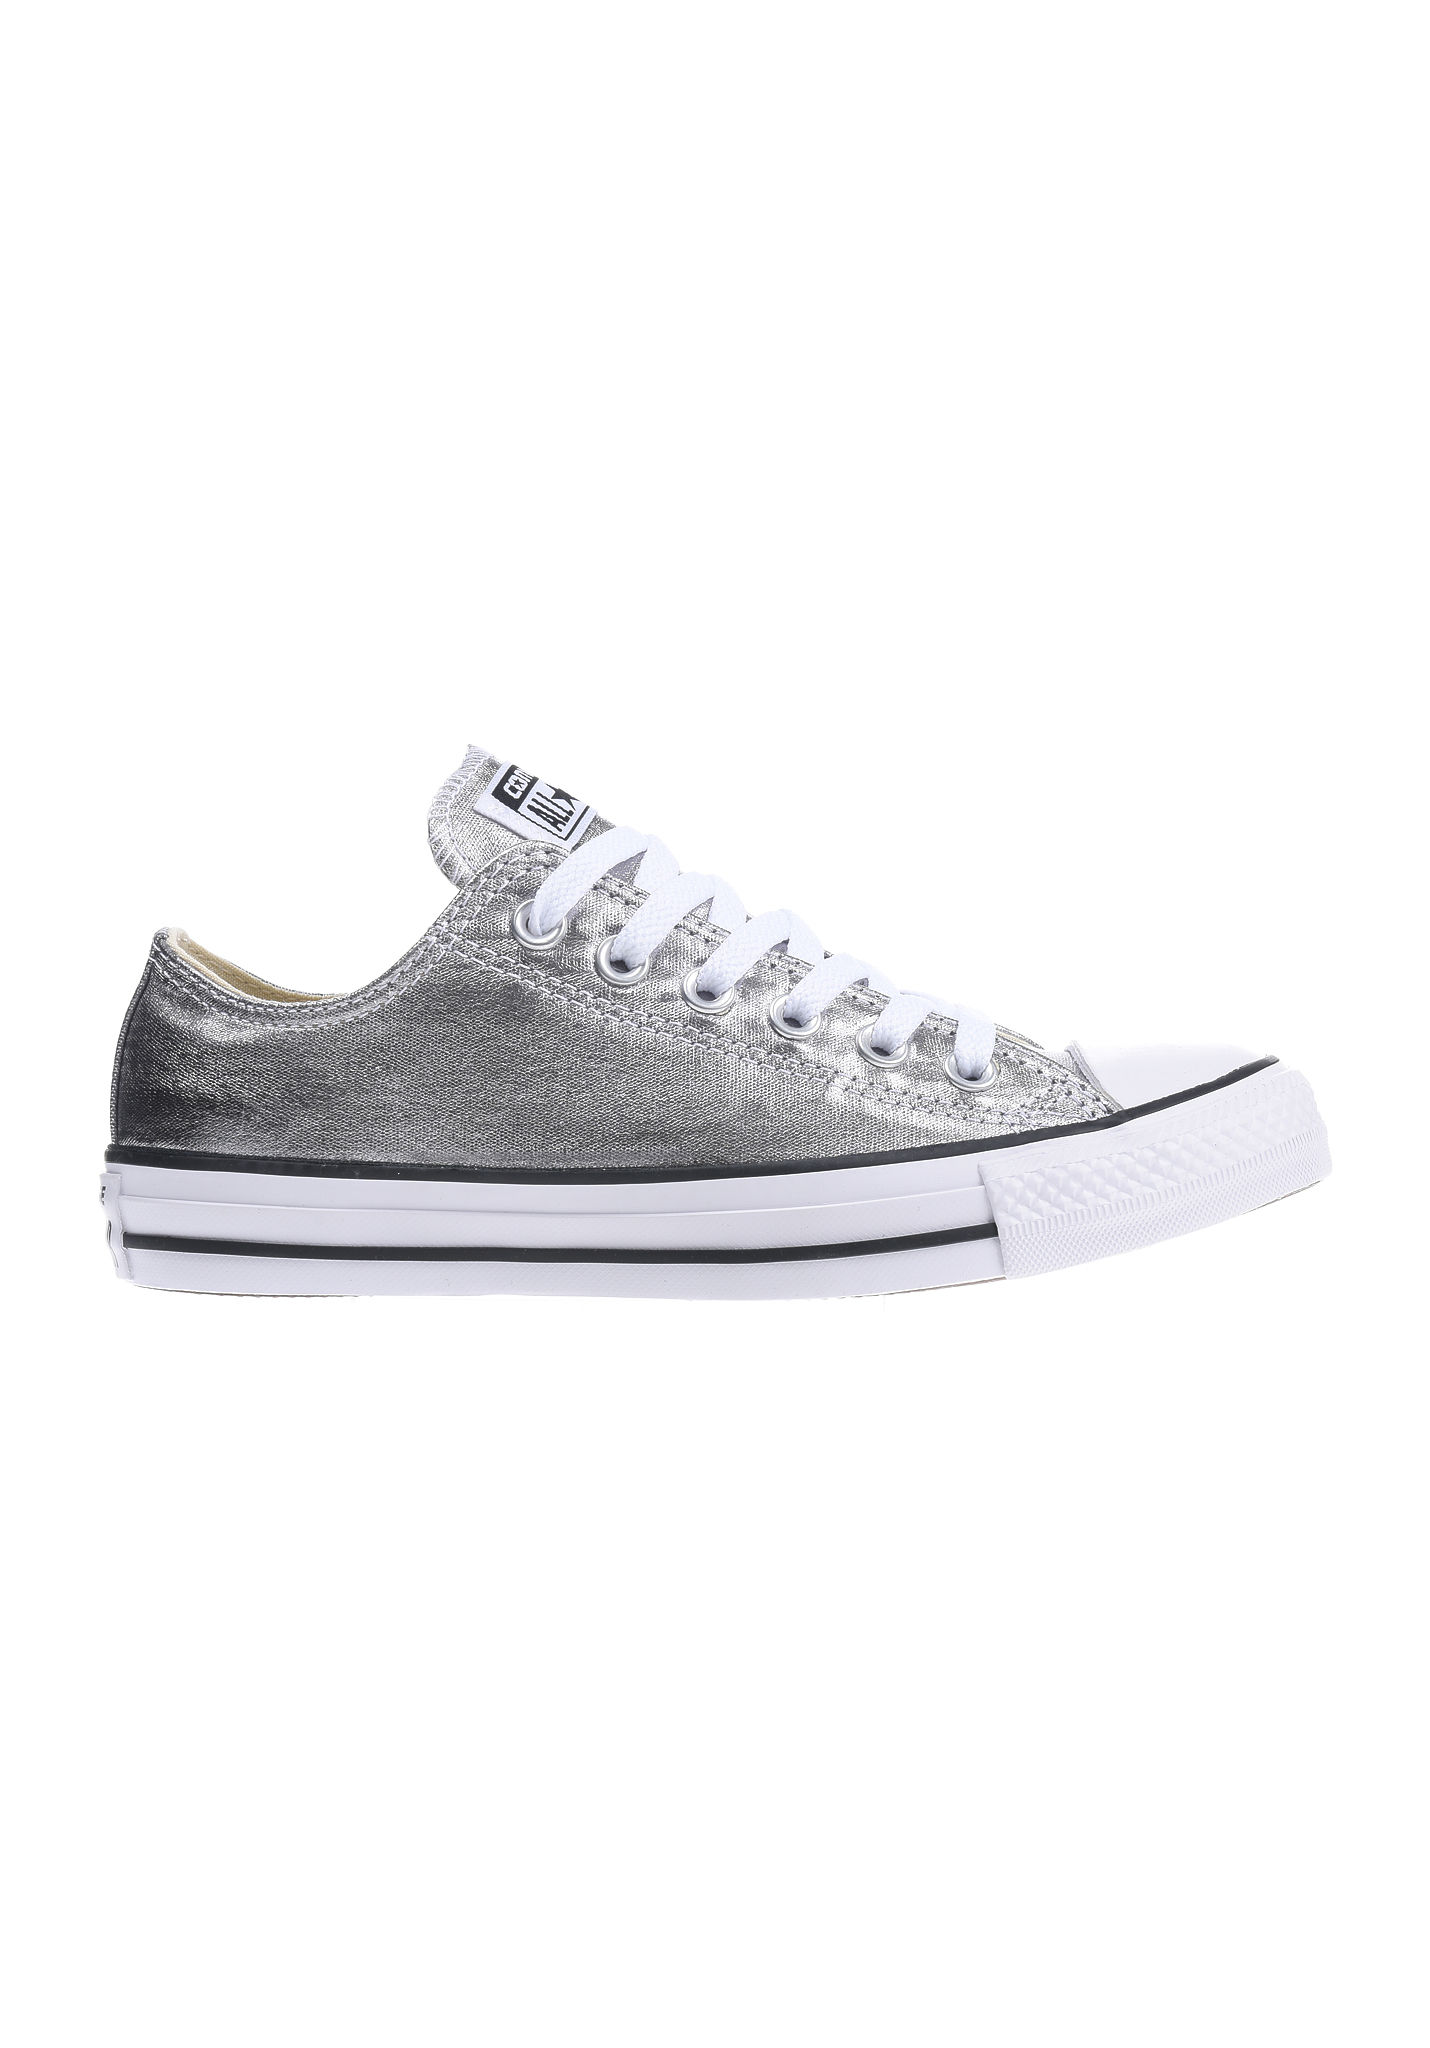 0a3d25ced03 Converse Chuck Taylor All Star Ox - Sneakers voor Dames - Zilver - Planet  Sports